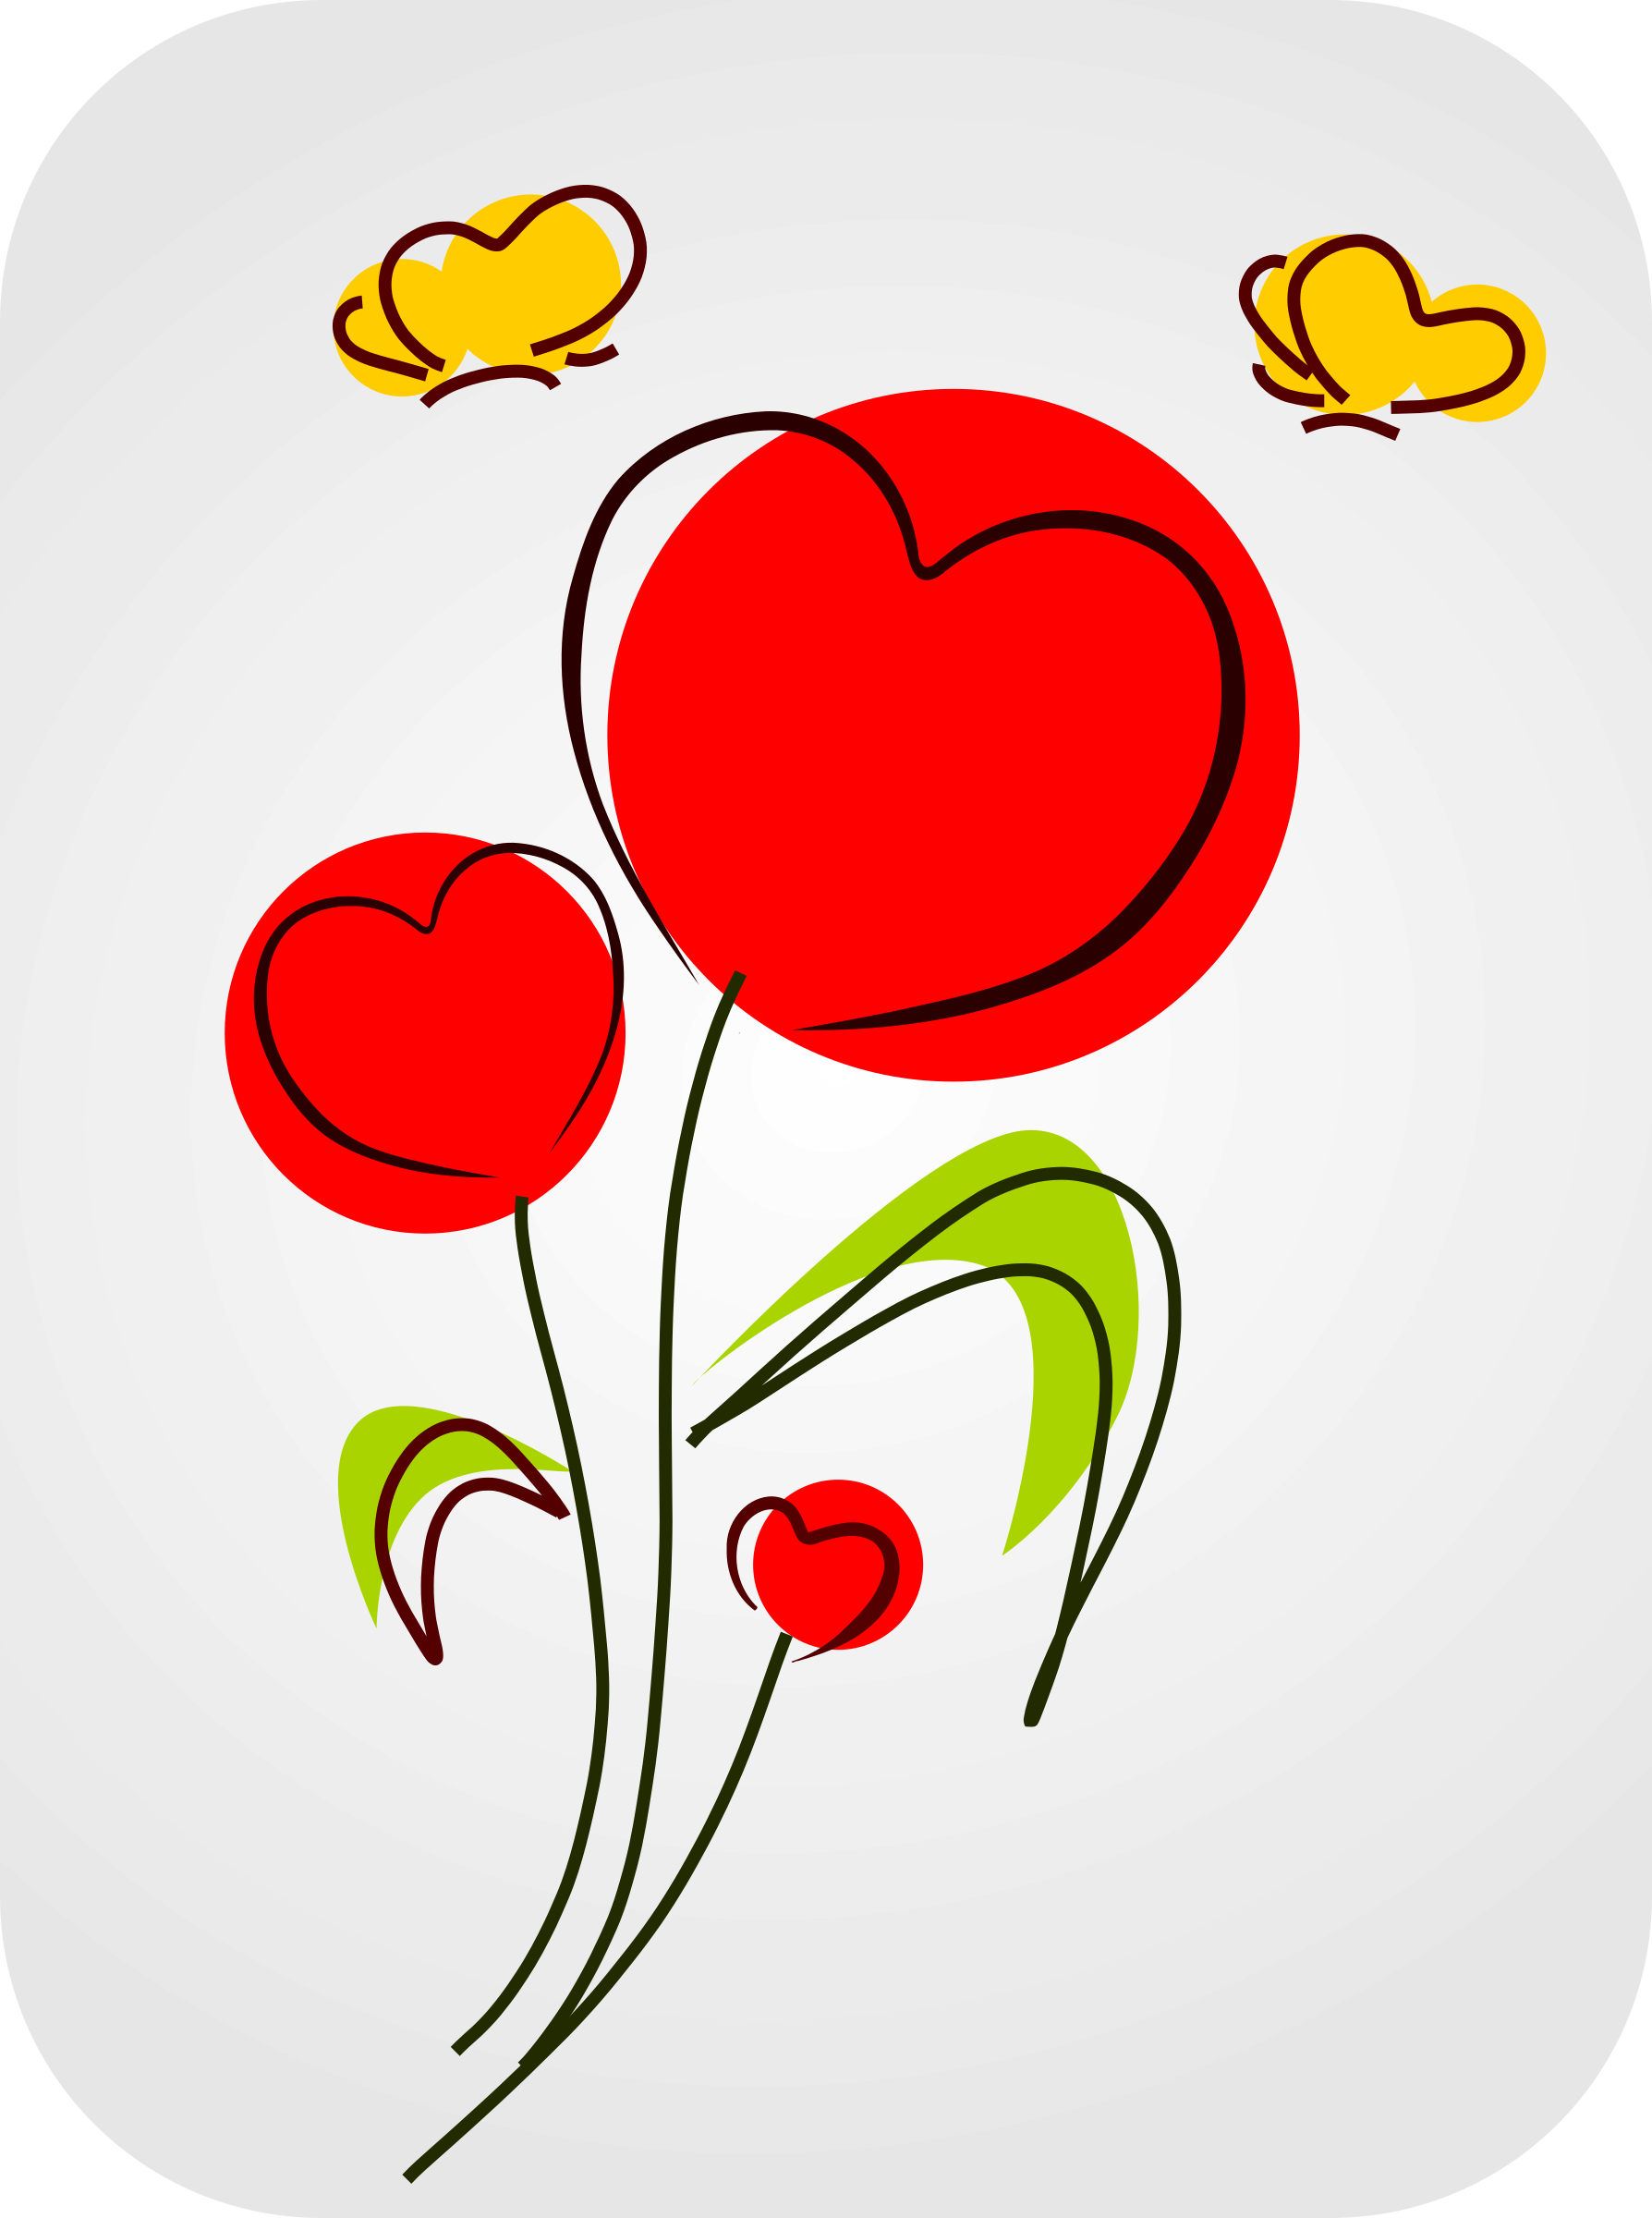 With hearts big image. Flowers clipart smile